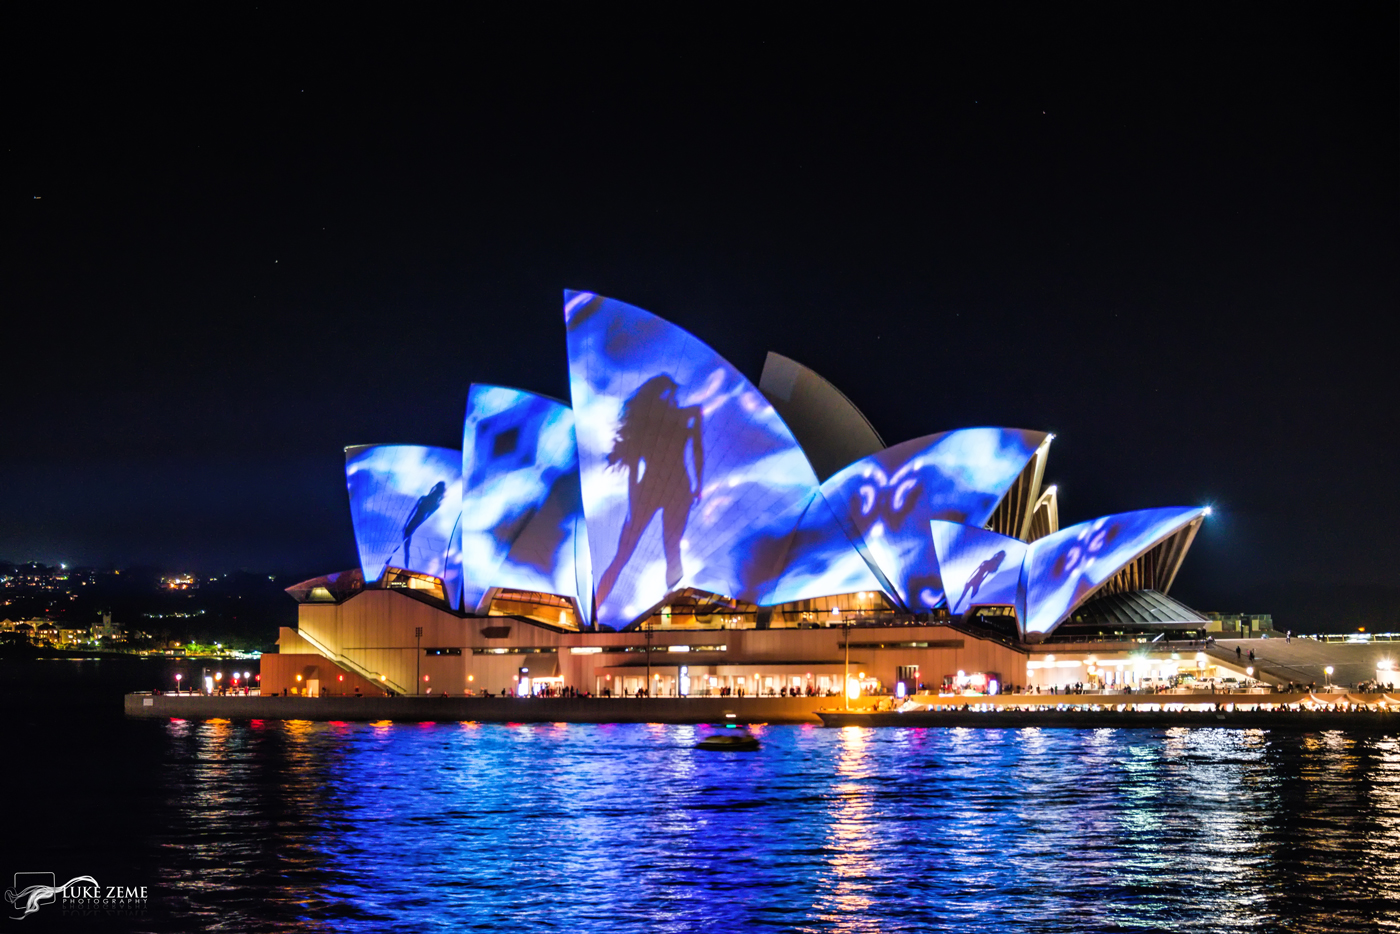 Luke Zeme Photography Faces-of-the-Opera-House-11 PHOTO OF THE DAY-Photos From Vivid Sydney- Circular Quay